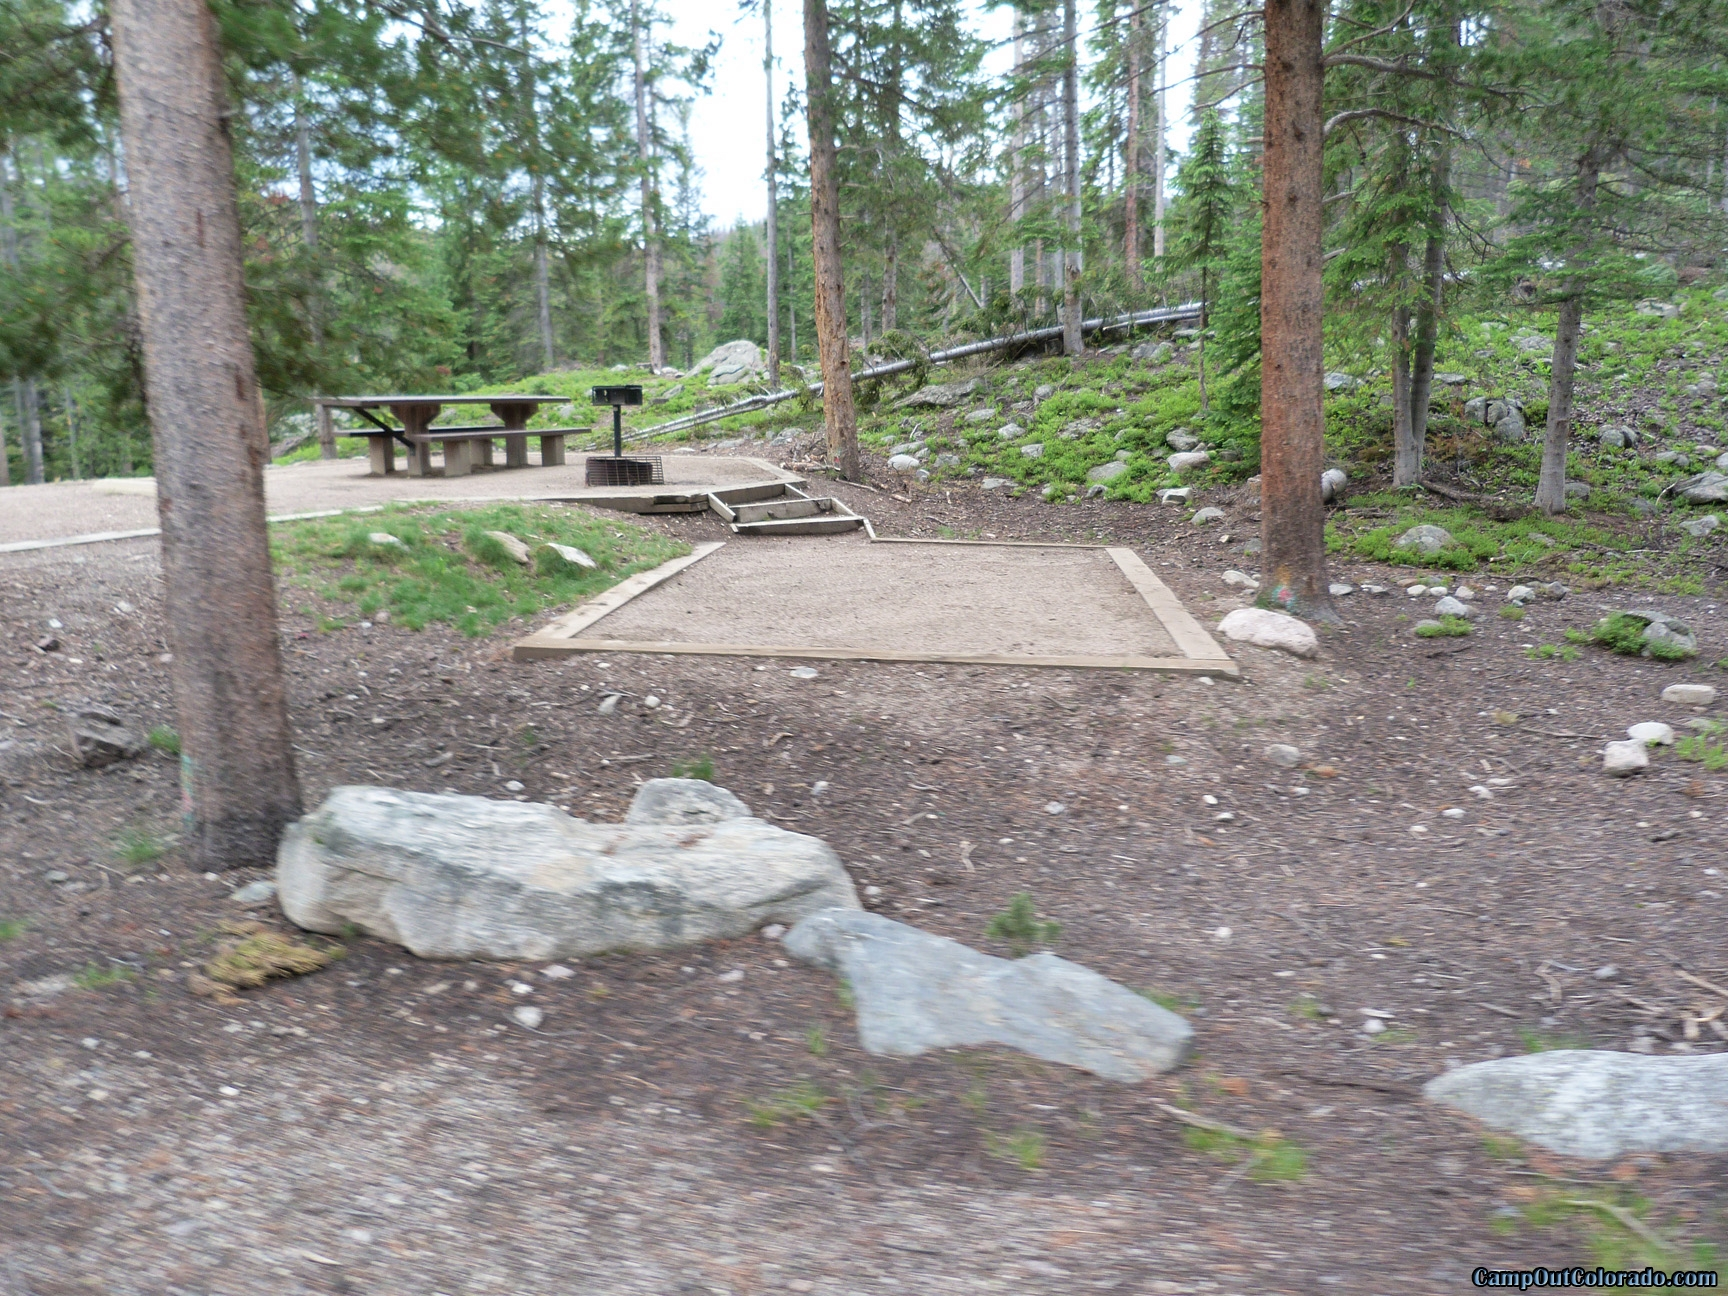 & Chambers Lake Campground Camping Review